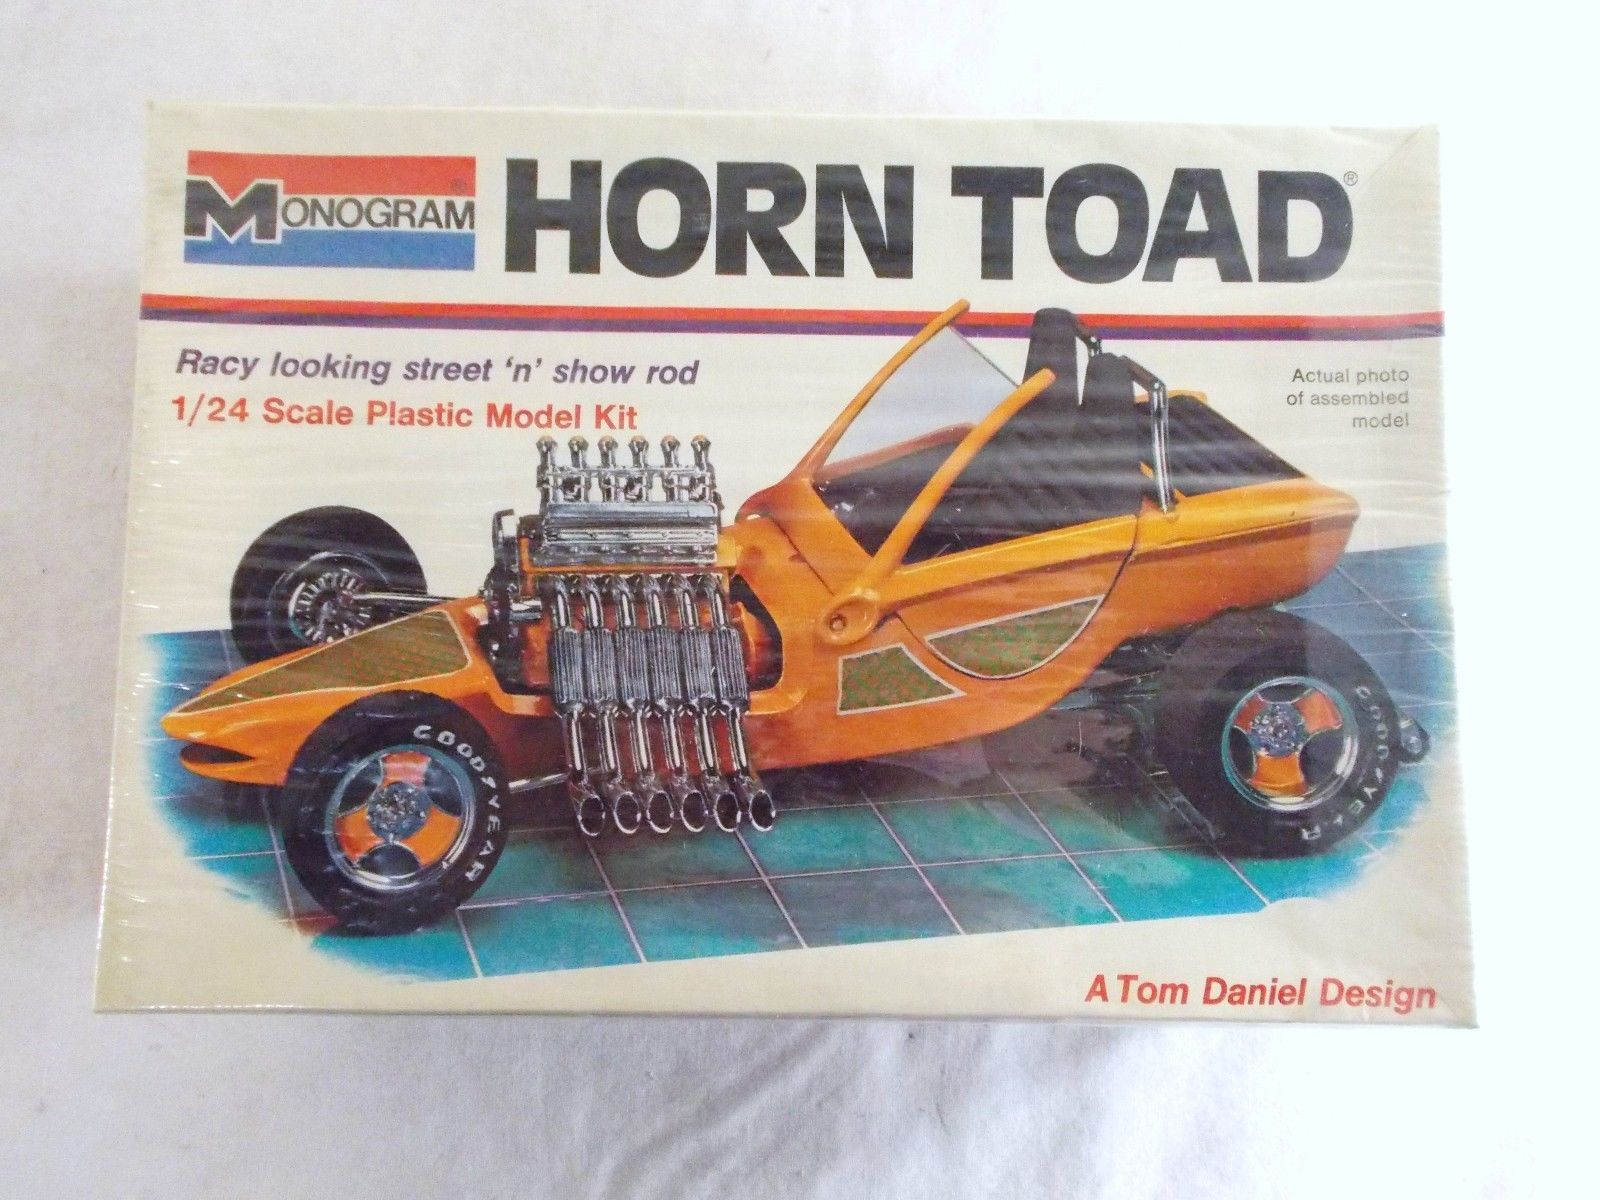 All nostalgic retro model kits wanted by the-toy-exchange - http ...